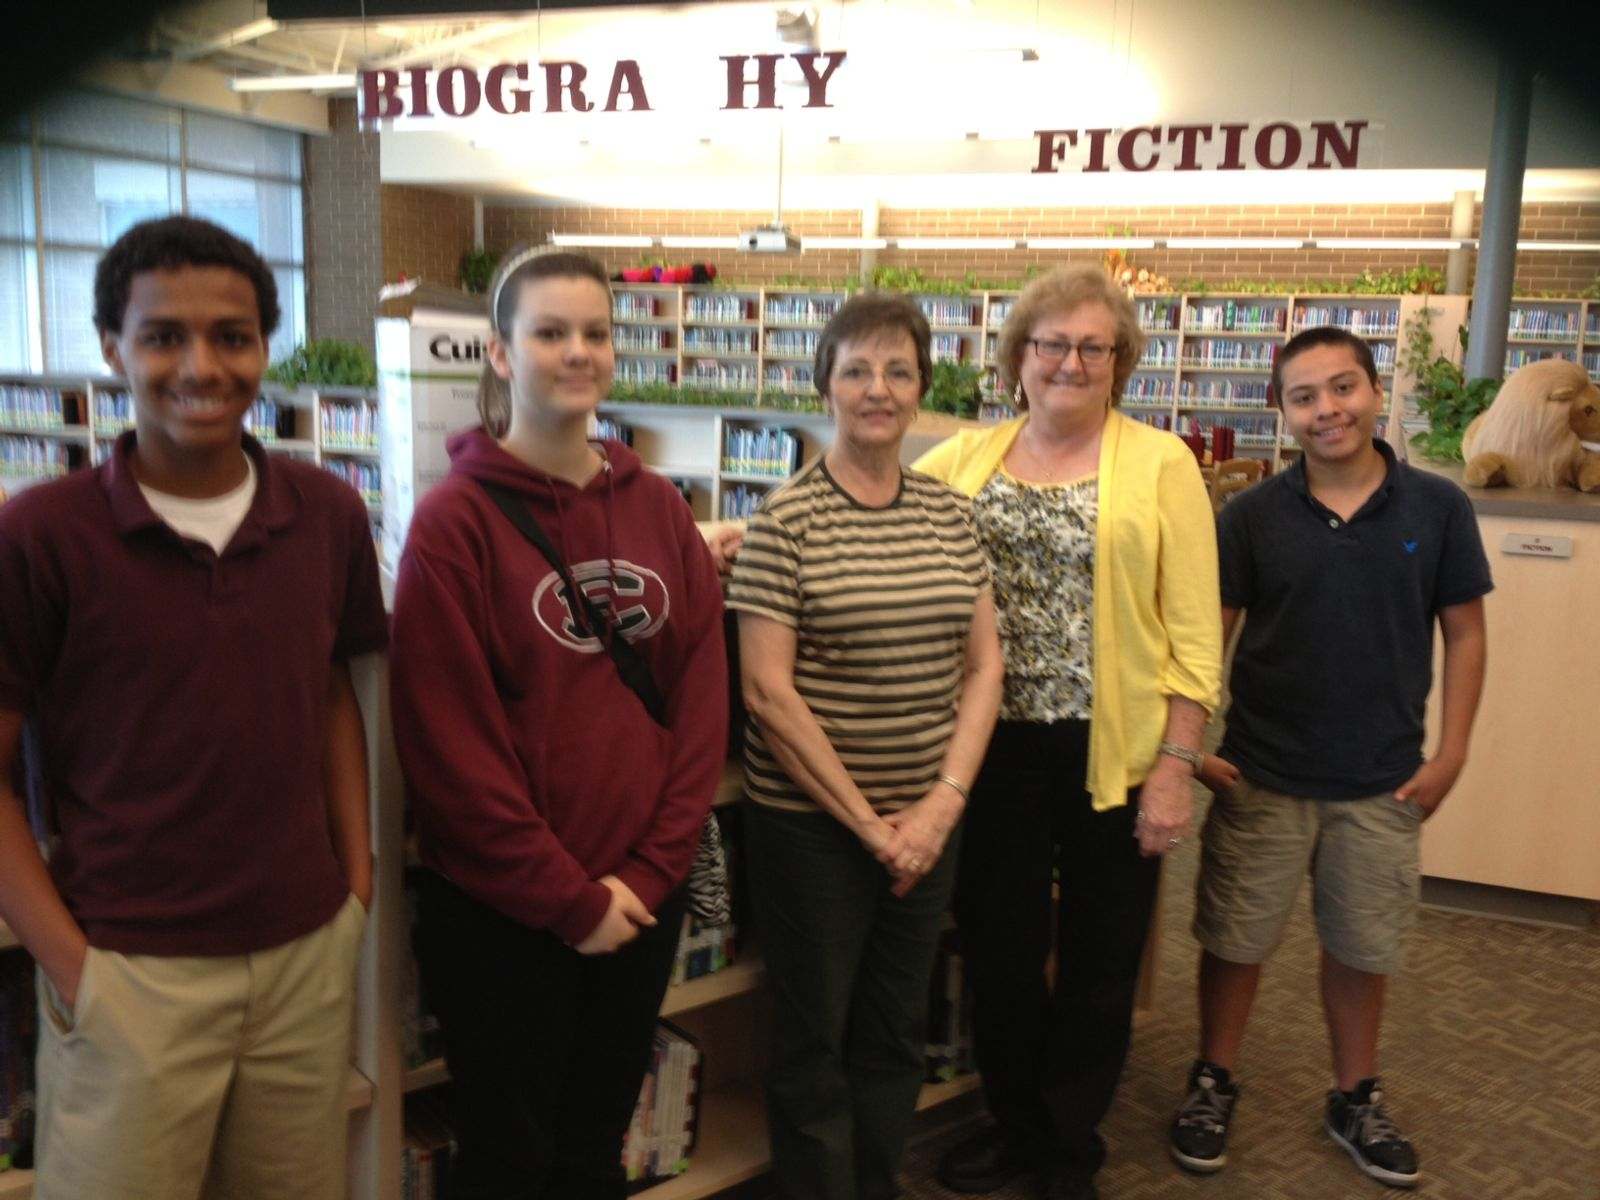 Students Jayden Owens, Kelsey Puckett, Jose Cisneros along with Librarian Lori Little welcomed Patricia Rider as she delivered books from The Children's ...